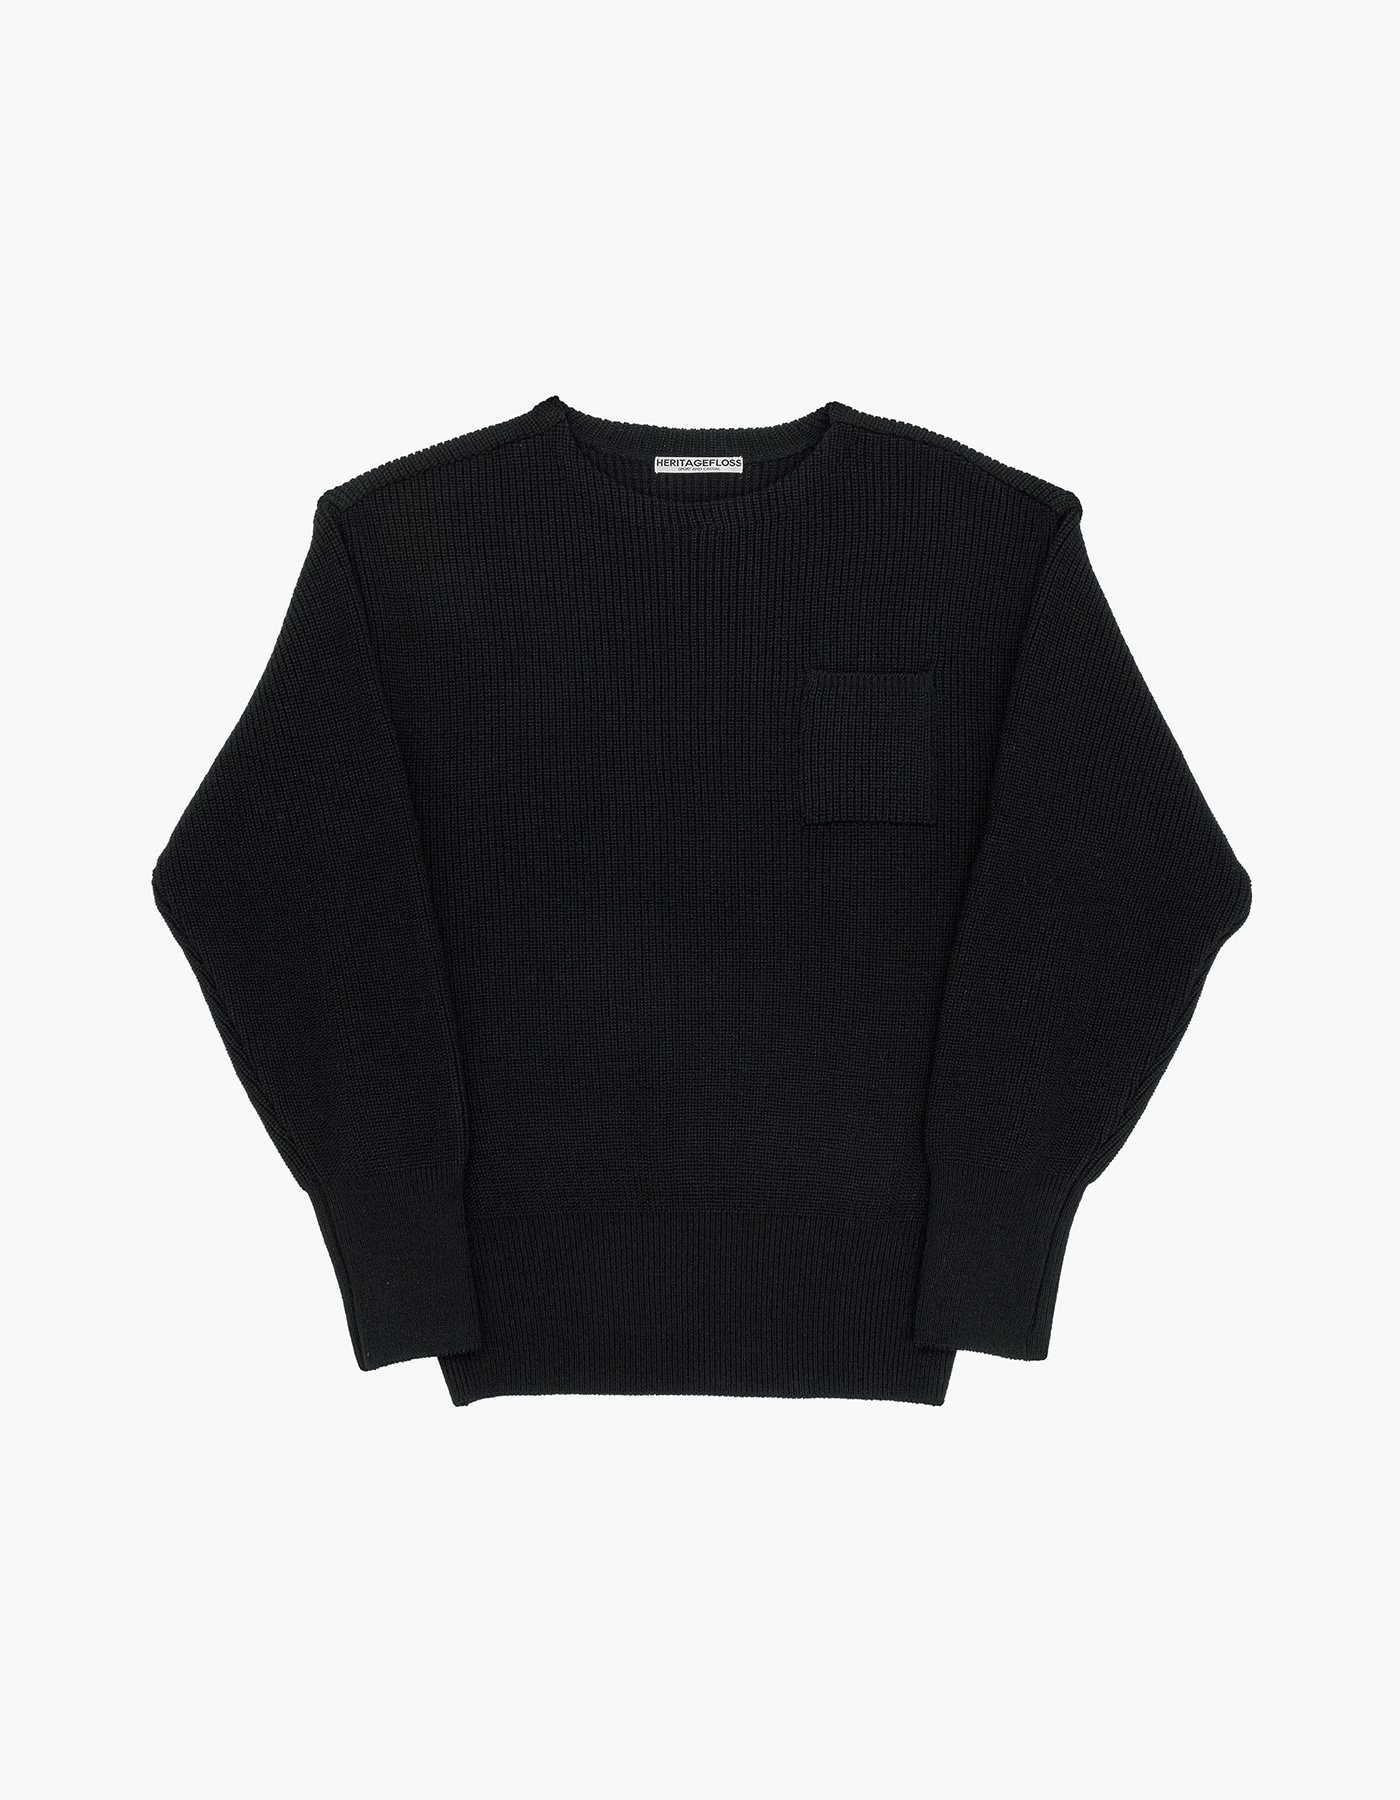 WOOL KNIT / BLACK